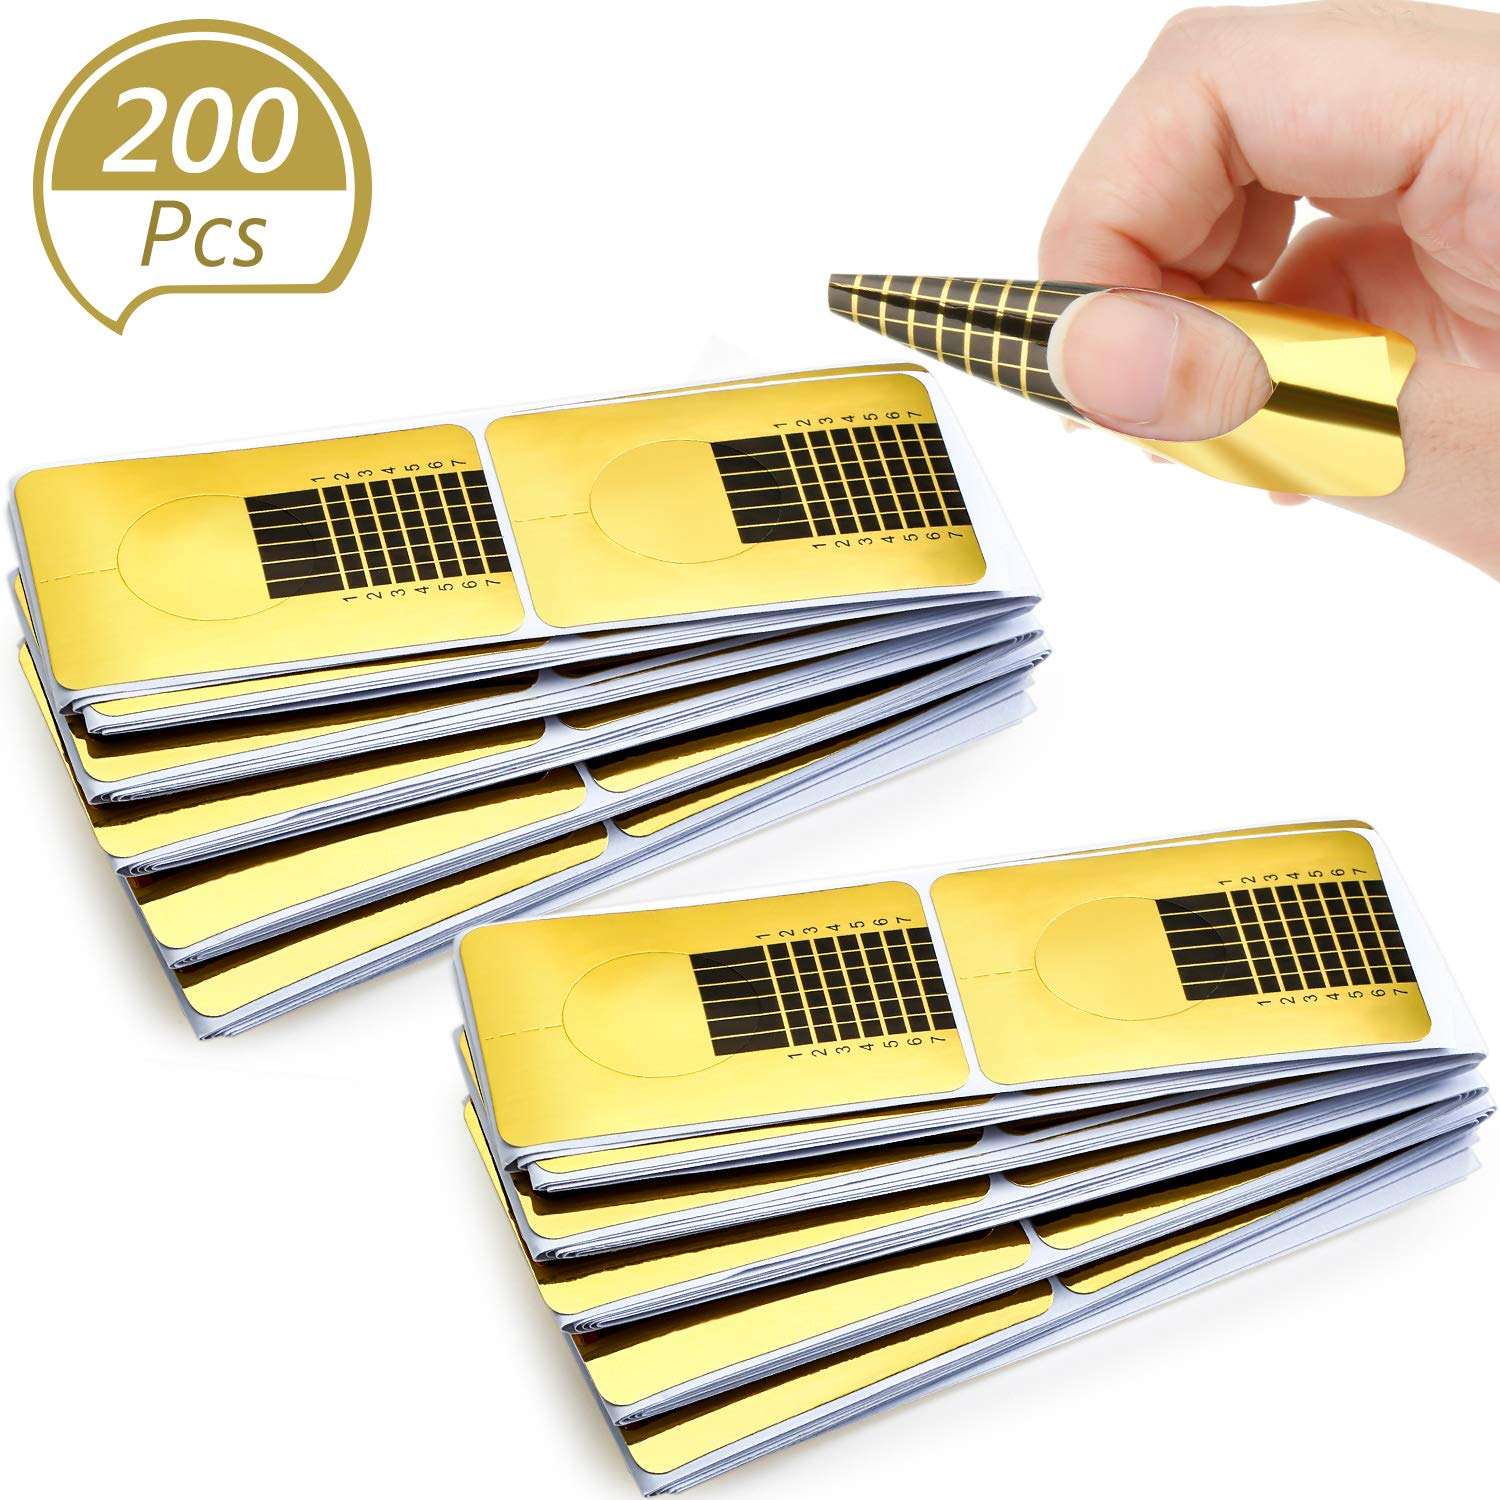 200 Pieces Form Guide Stickers Nail Extension Tips Self-Adhesive Art Nail Tips French DIY Tool UV Gel Tools for Women Girls Nail DIY Supplies Nail Salon at Home (Square-Shaped)